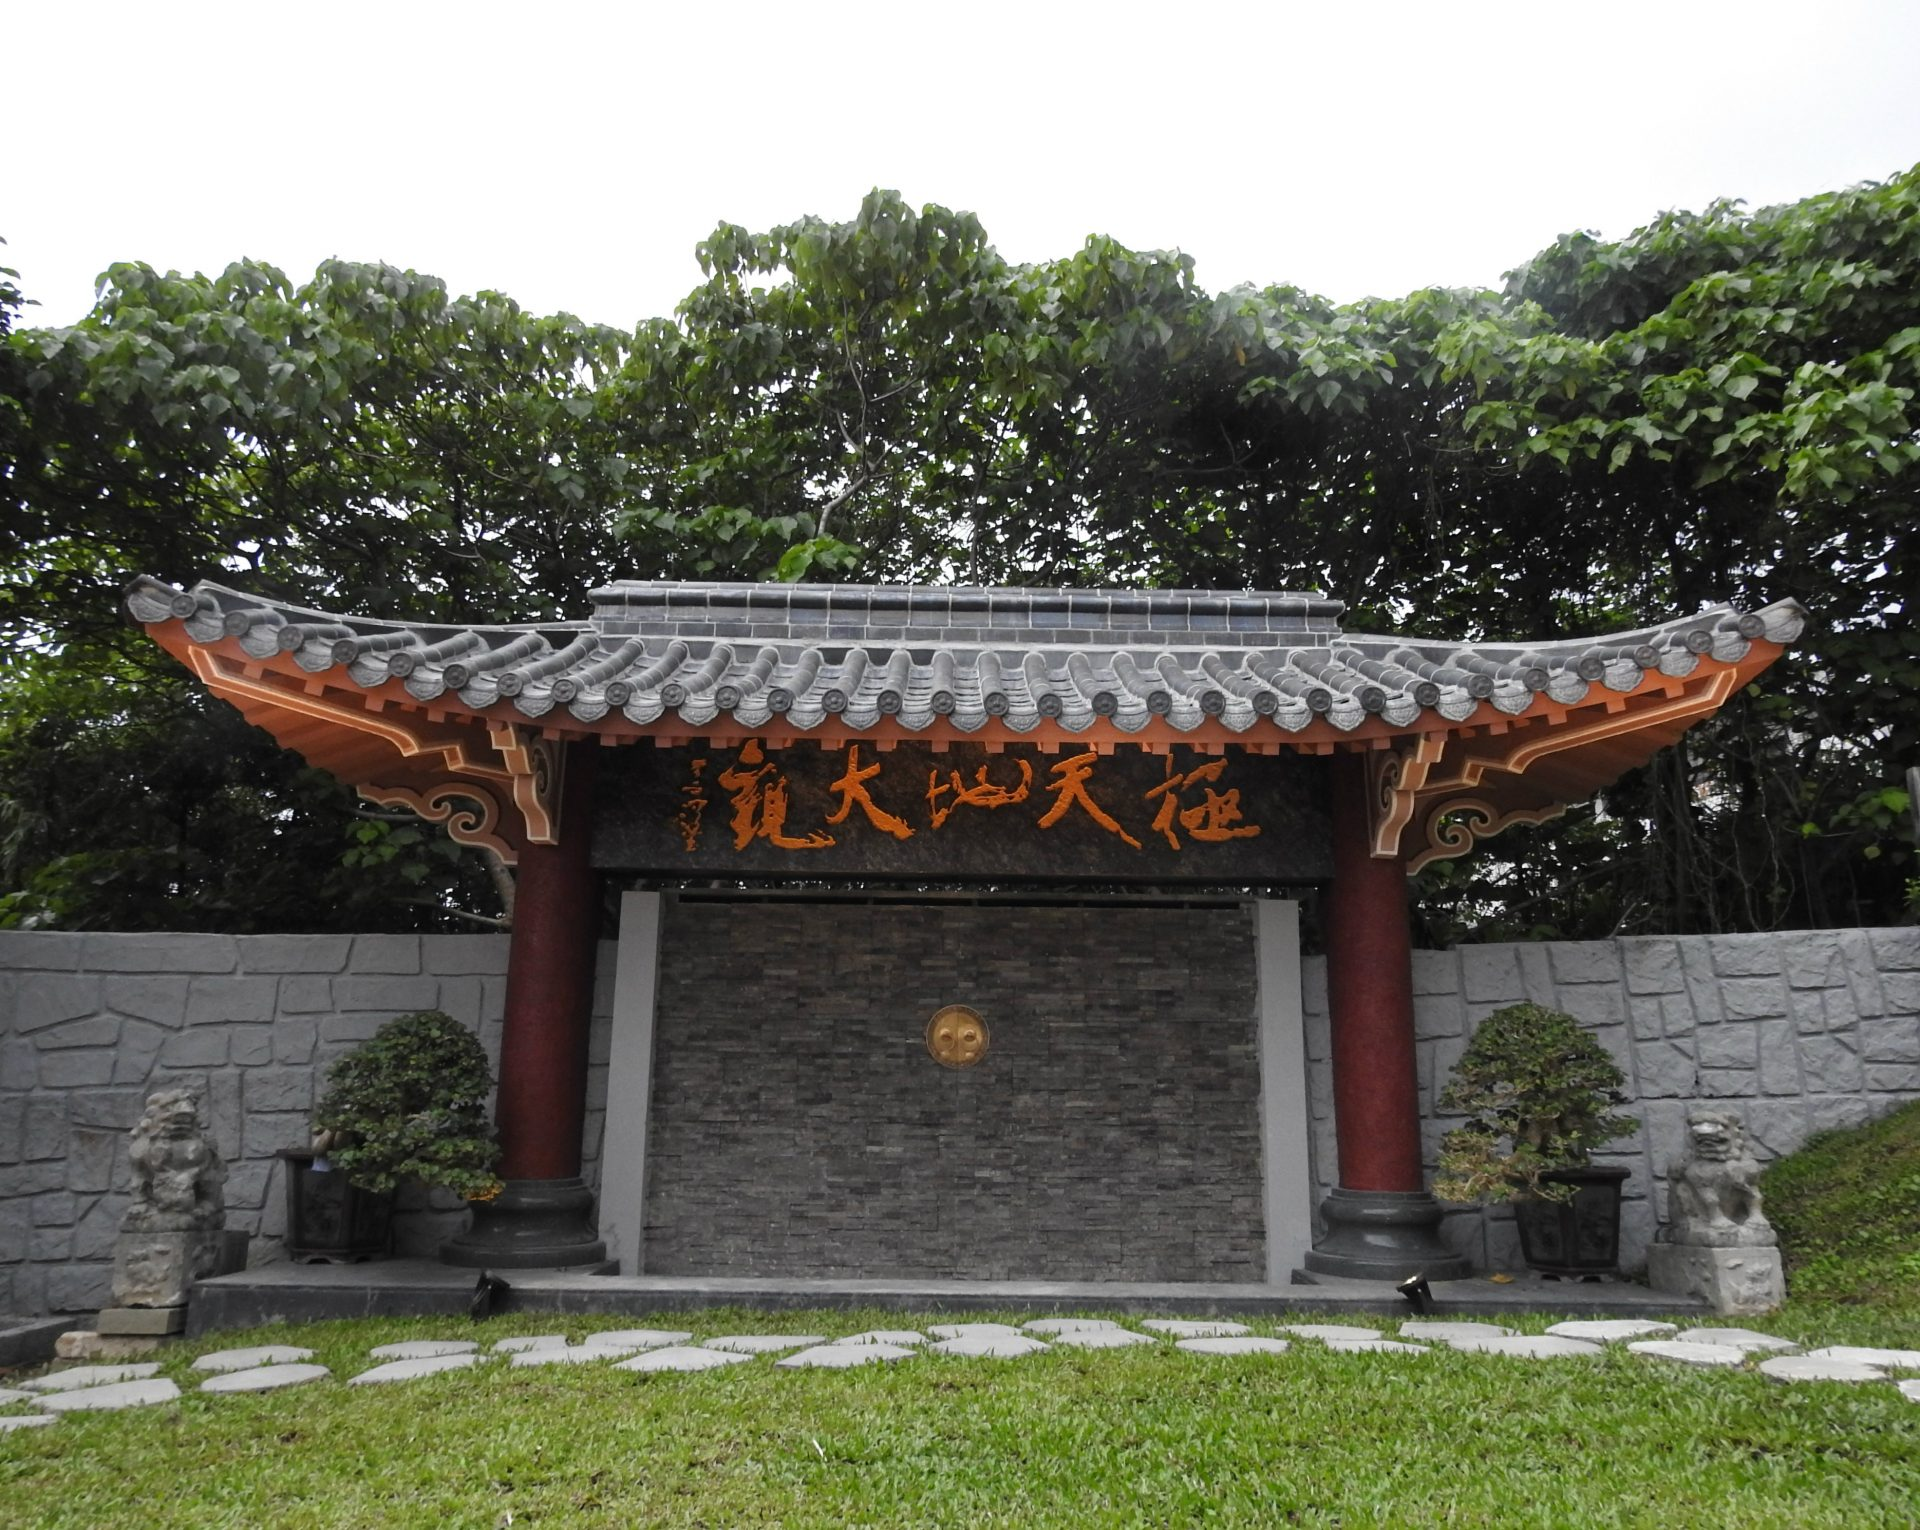 A Chinese temple-style structure bearing the characters of 極天地大觀 (Gather the grand sights of heaven and earth) at Amy Liang Bonsai Museum in Taipei, Taiwan (Image: Billy Shyu/ Vision Times)